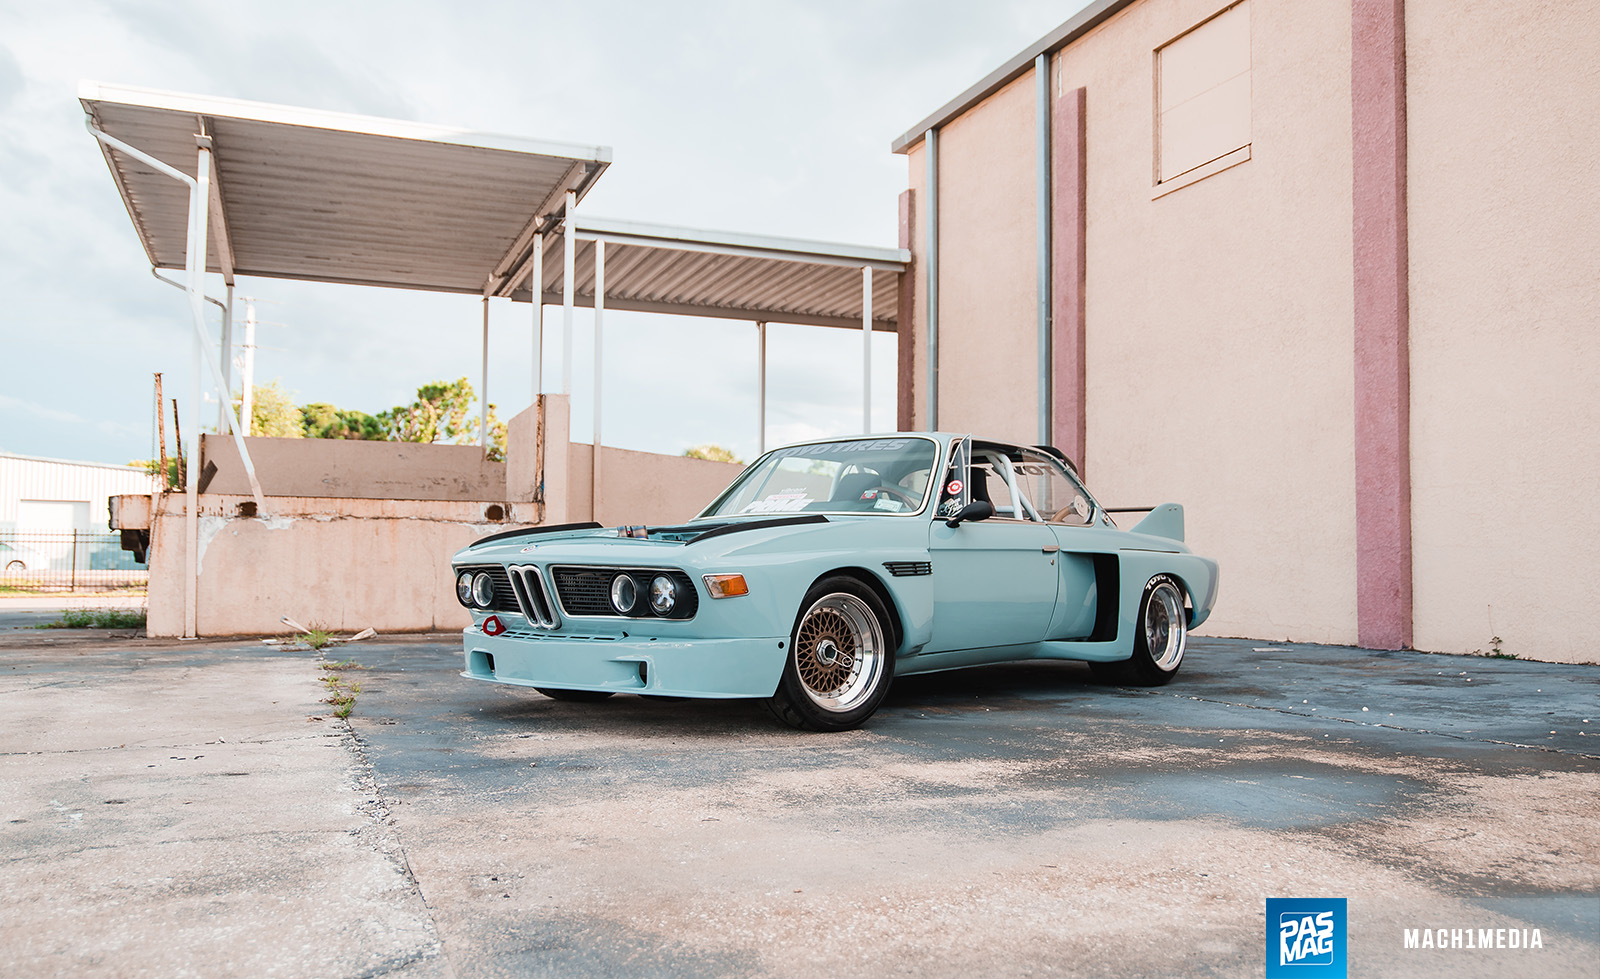 03 Willy Izaguirre 1973 BMW 3.0 CS PASMAG